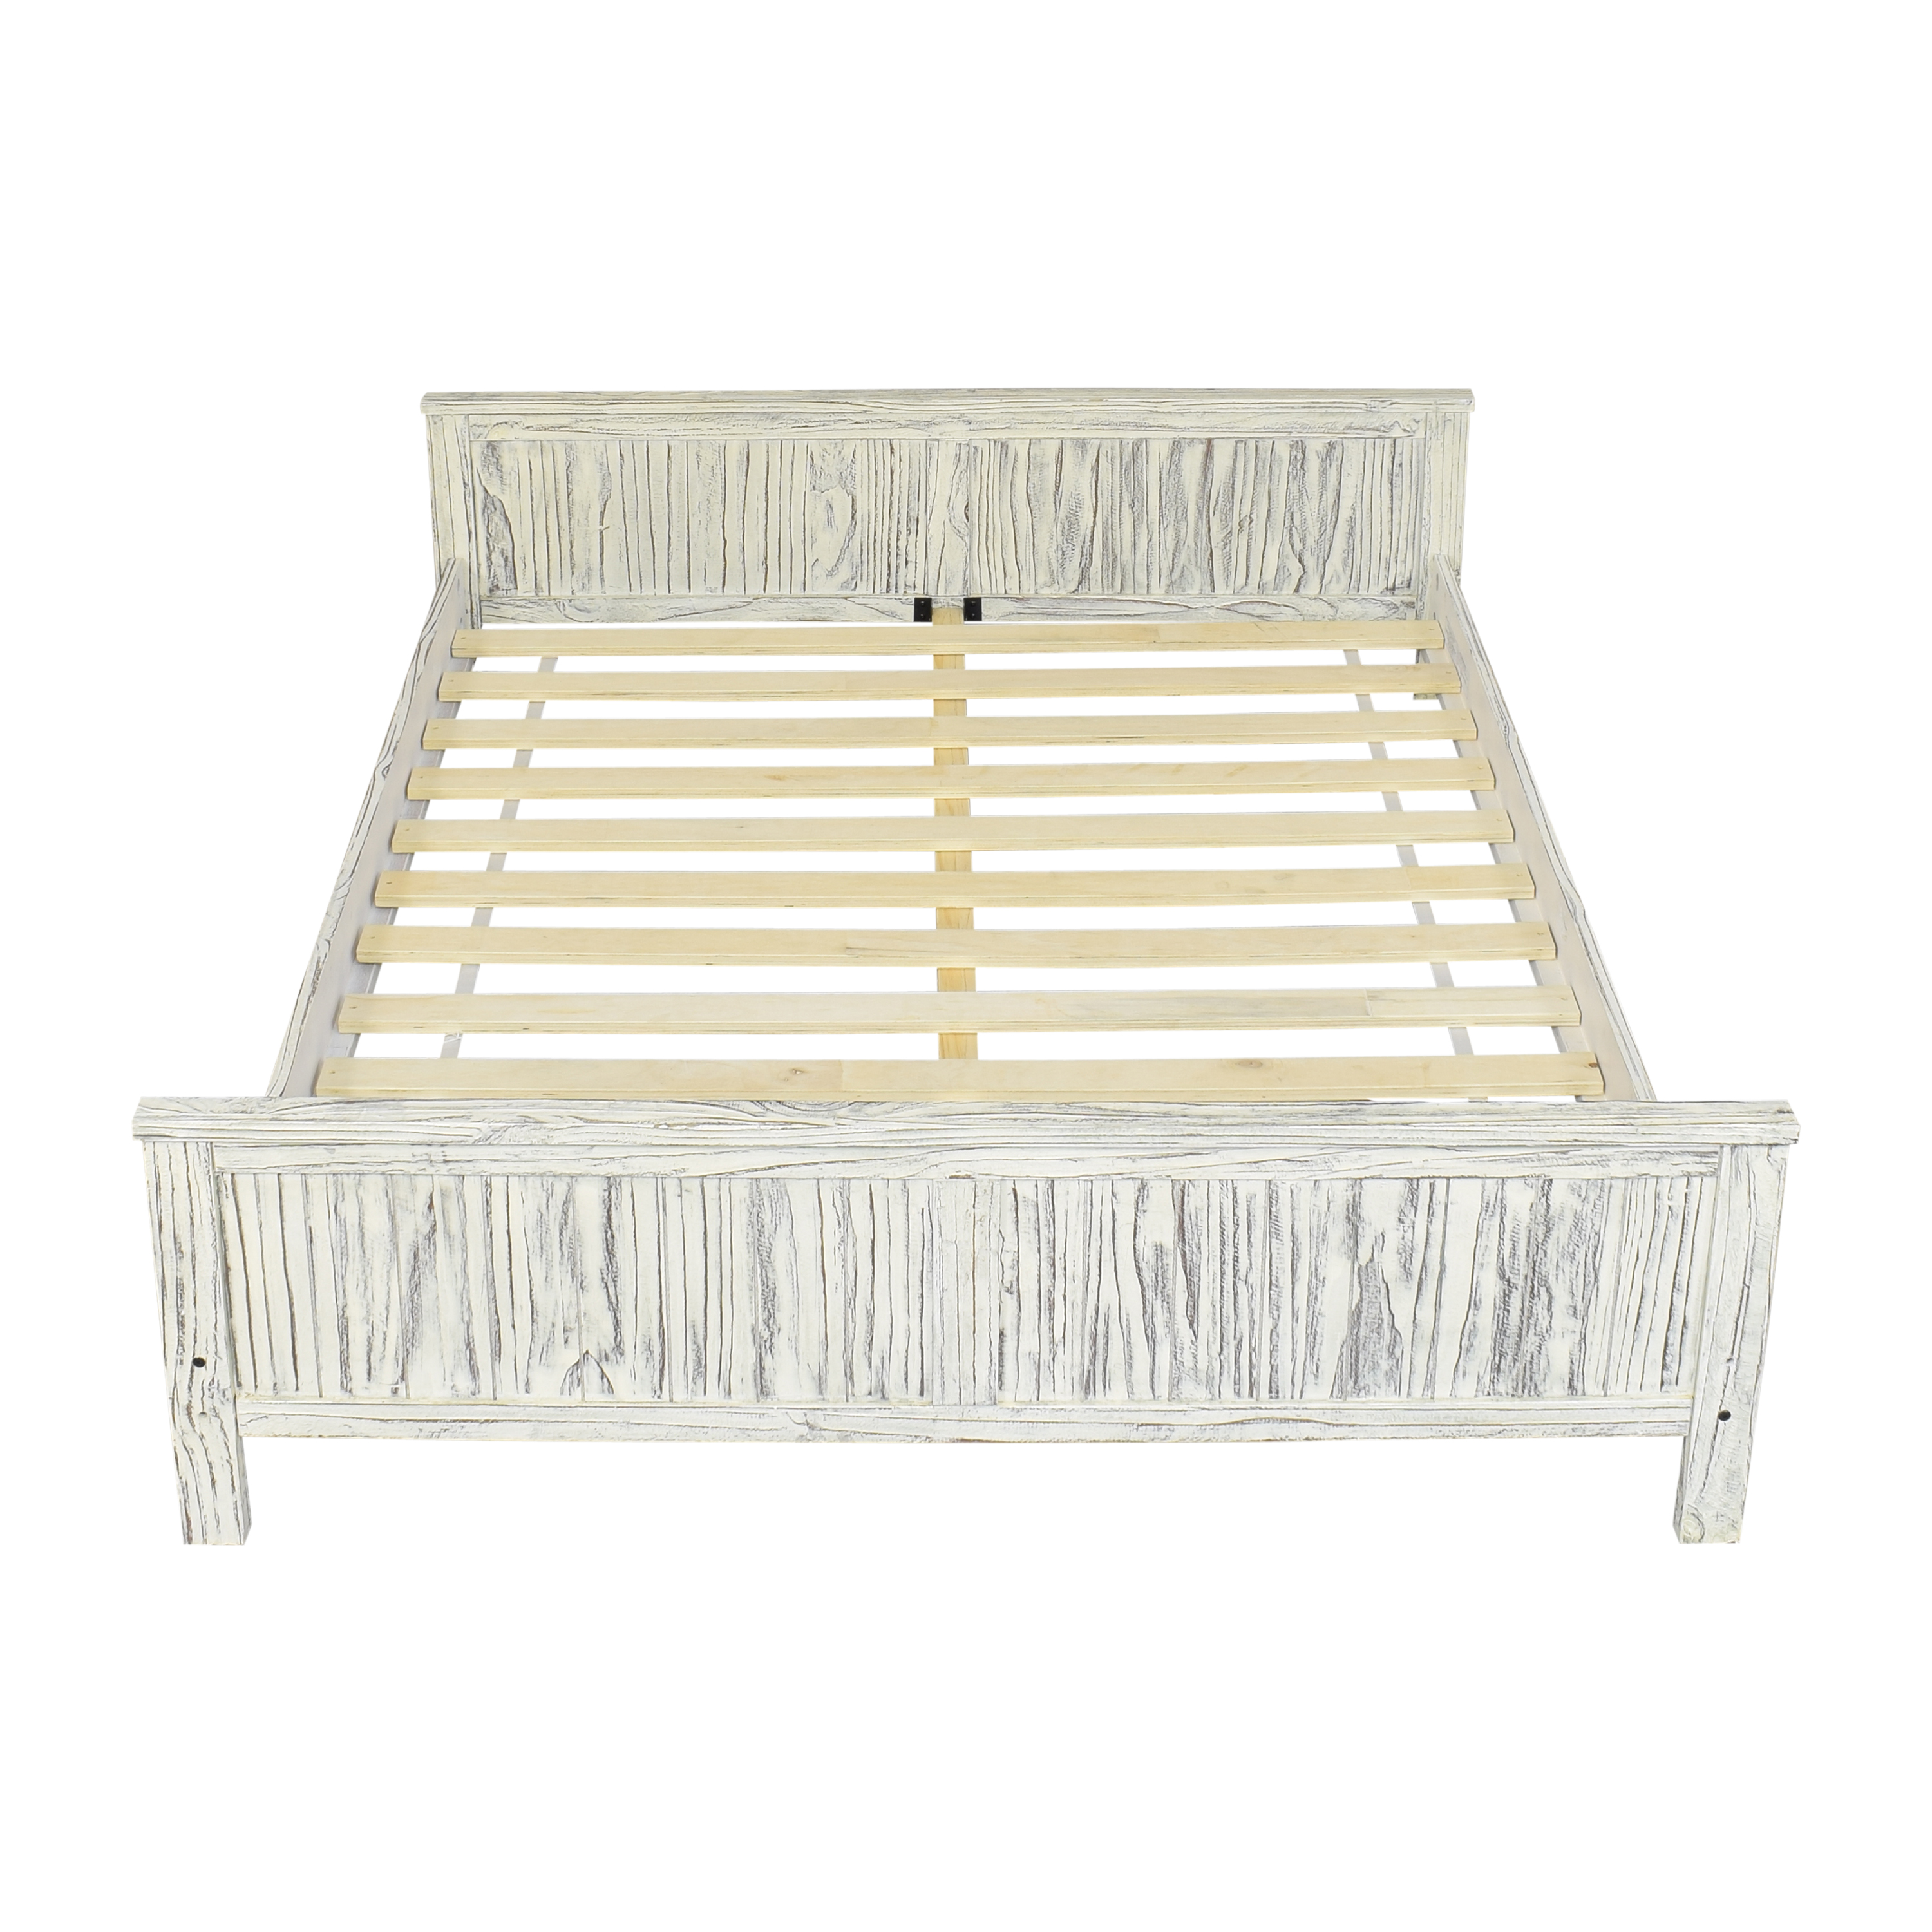 Birch Lane Rustic Style Full Bed / Bed Frames